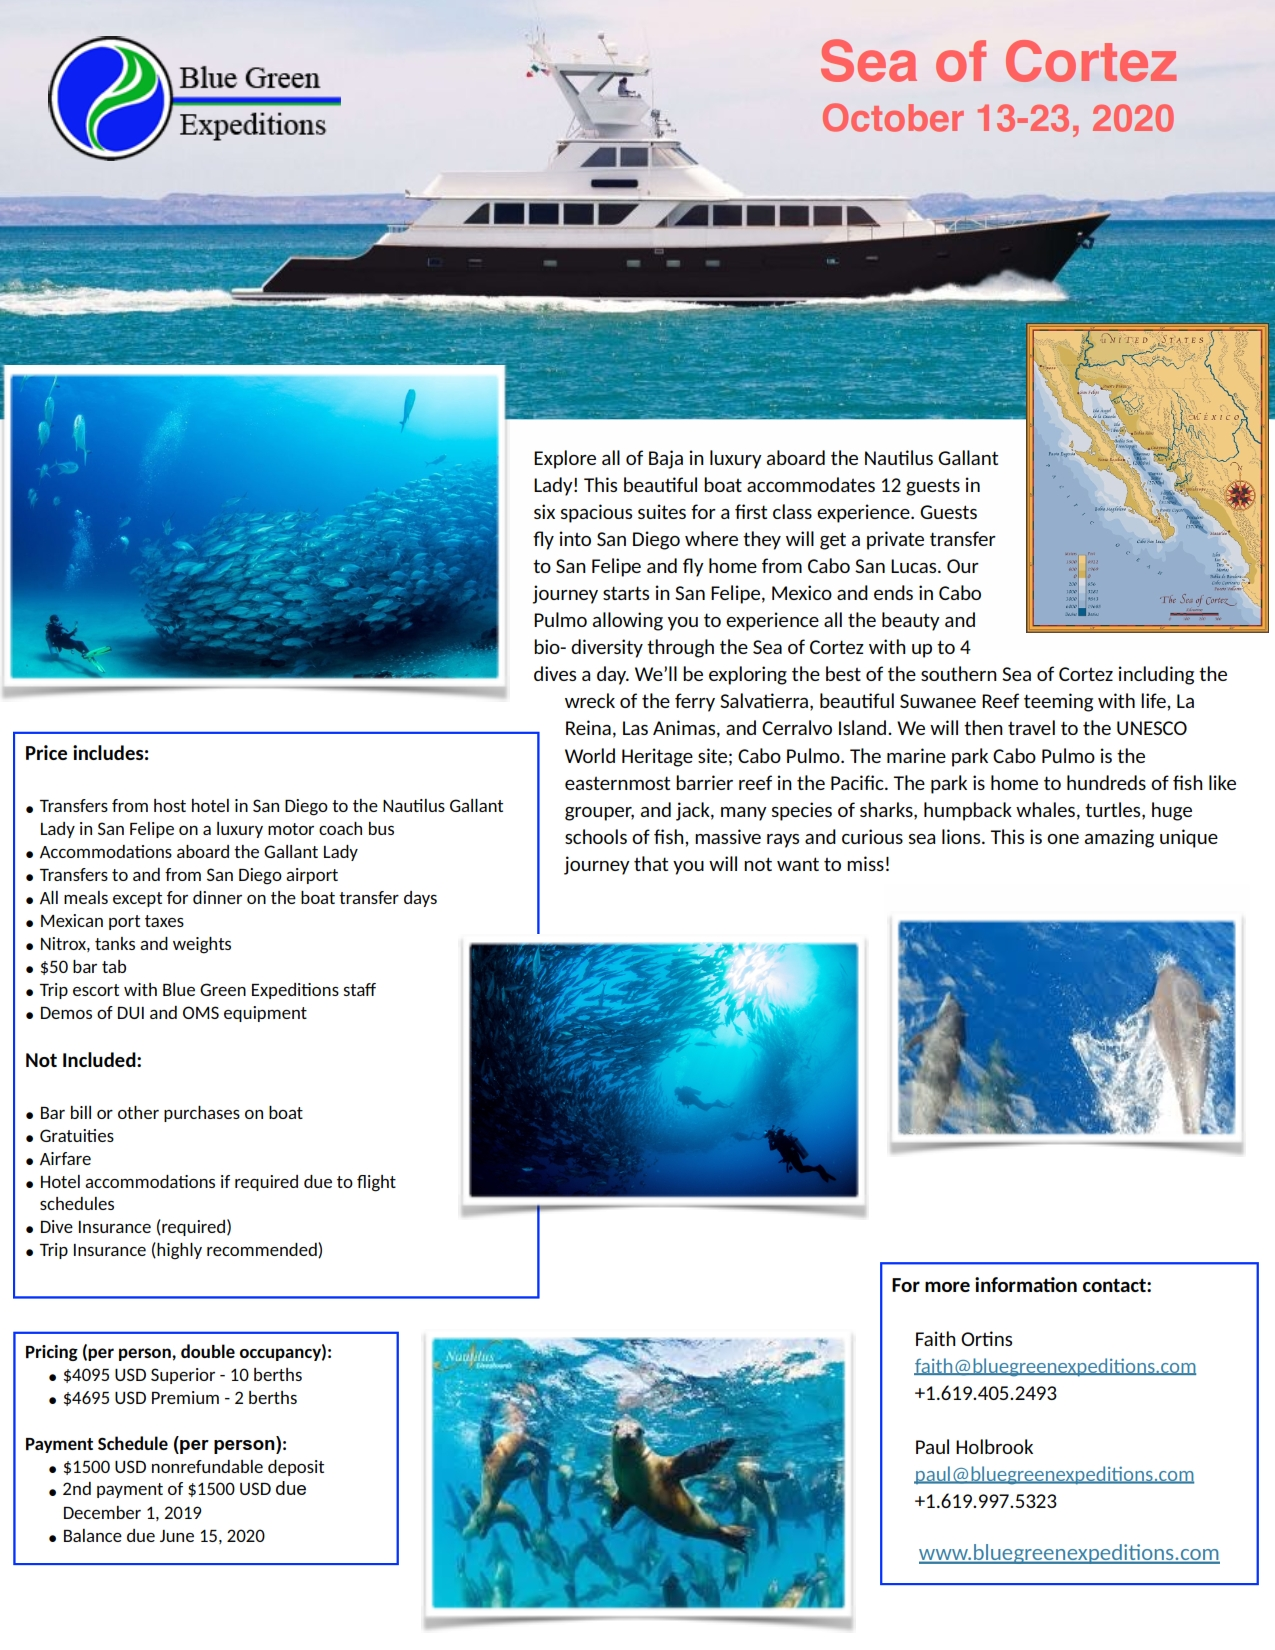 Sea of Cortez, October 13 - 23, 2020, expedition description and pricing. PDF flyer contains the same information.